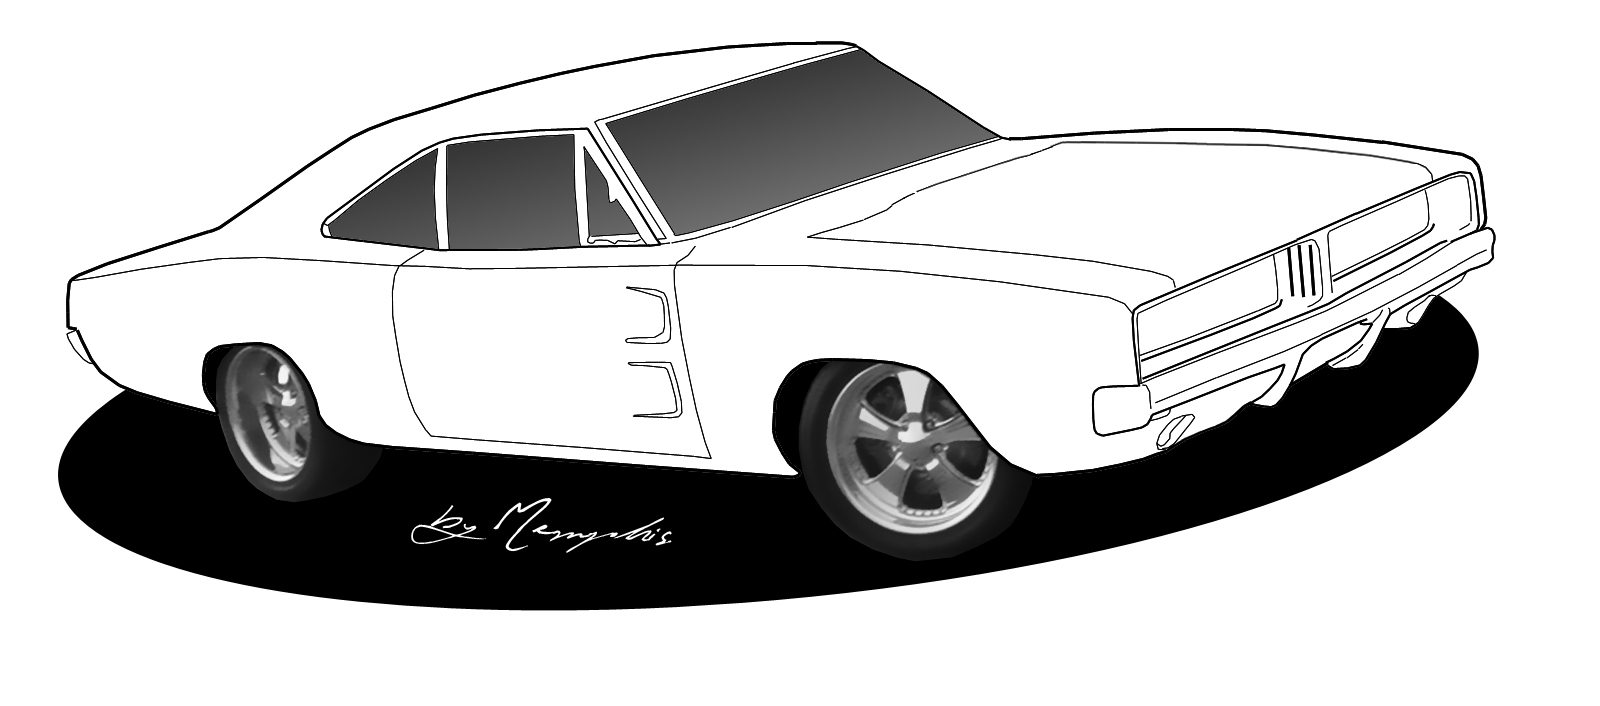 colouring cars muscle car coloring pages to download and print for free colouring cars